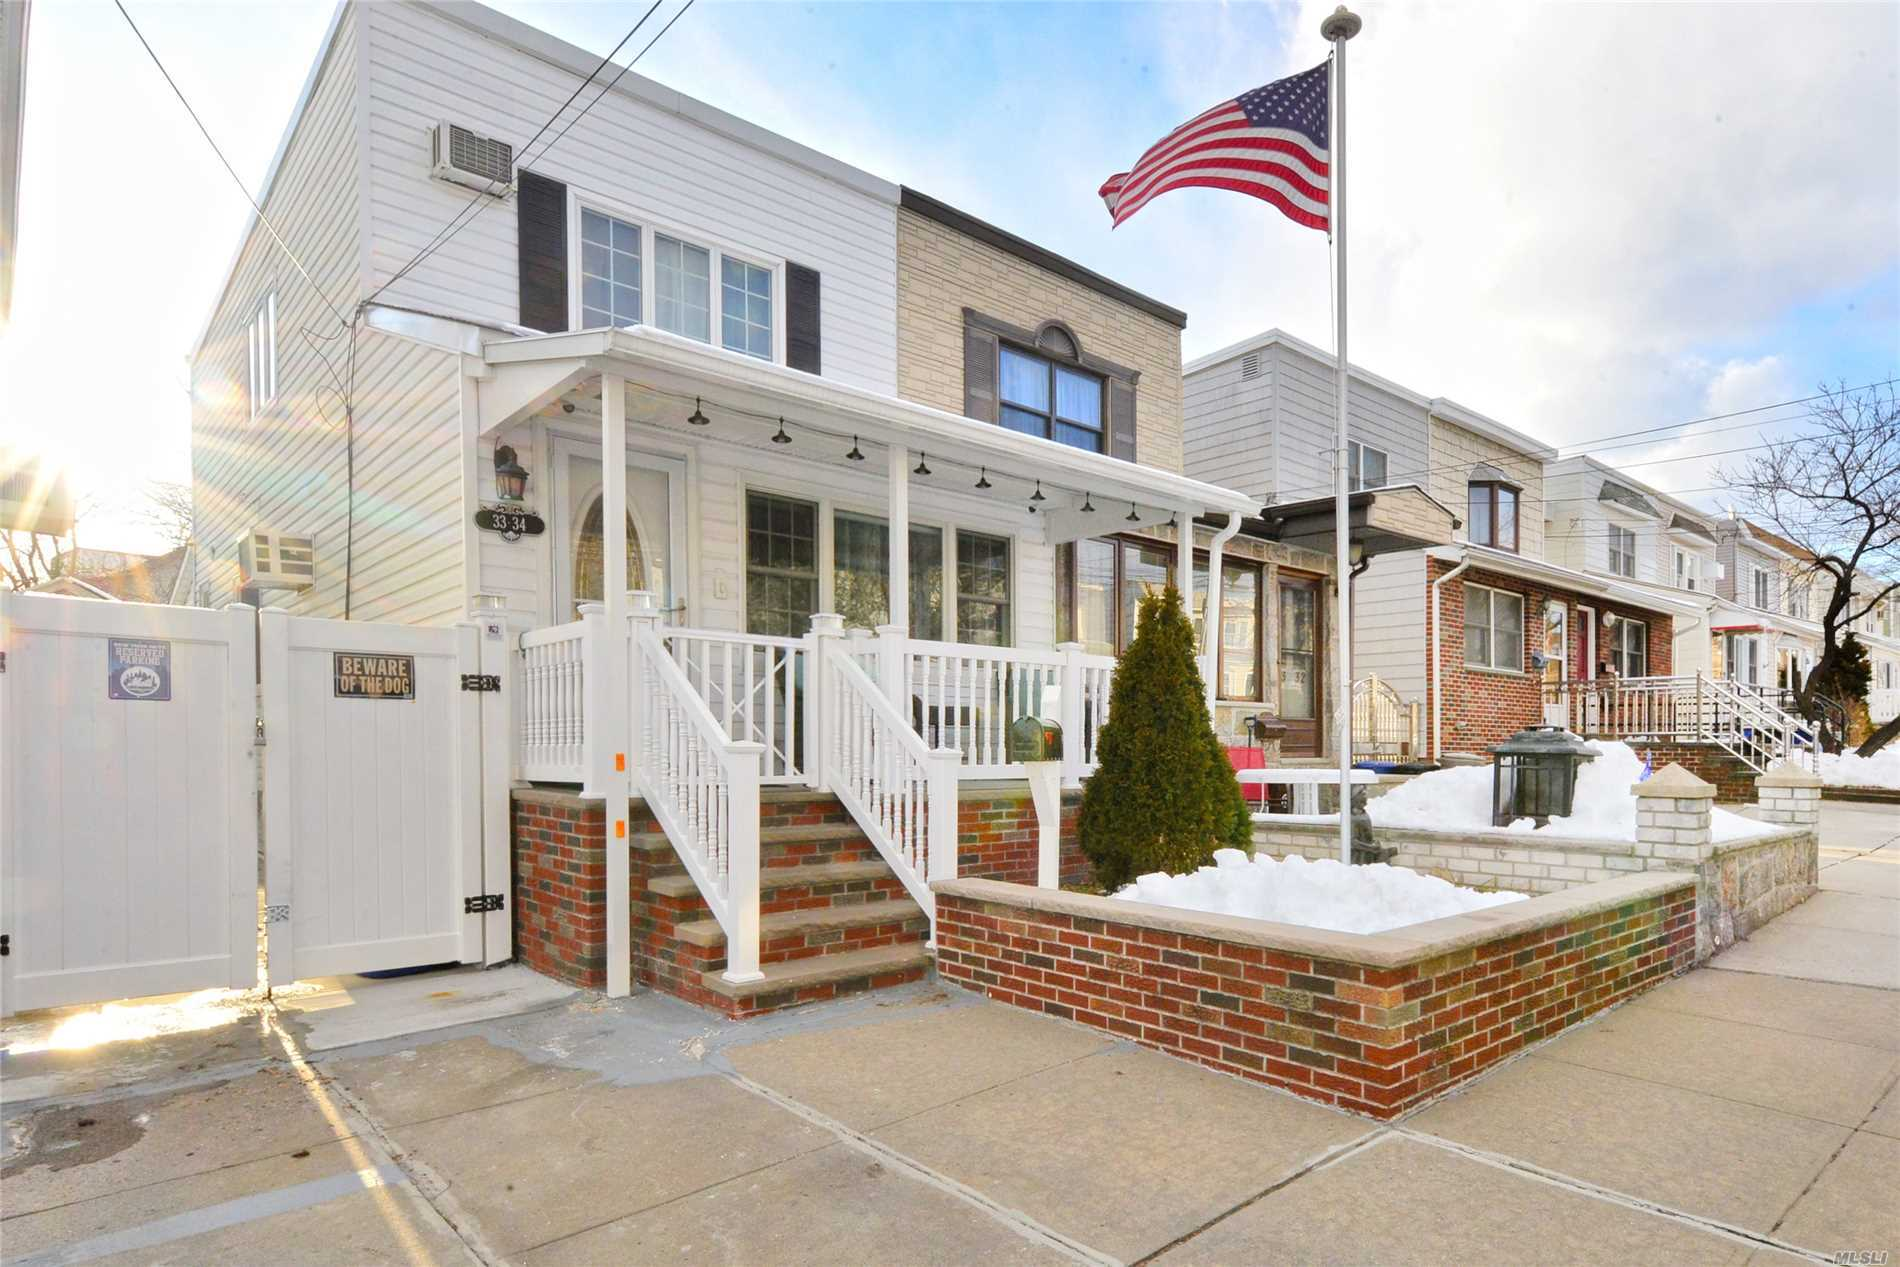 Treasure Island SD 1 Fam Home In Bayside. Move right into this newly renovated warm home with exterior updates, new roof & a rare covered front porch to welcome peaceful mornings & quiet evenings. Upon entering, there's an open Sun-drenched living & dining room leading into a unique Legally-Extended Chef's Eat-in-Kitchen with spacious granite-countertop & Vaulted Ceilings. The second level was converted from 3 Bdrms into 2 spacious Bdrms. Skylights in hallway & renovated bathroom. SD#26